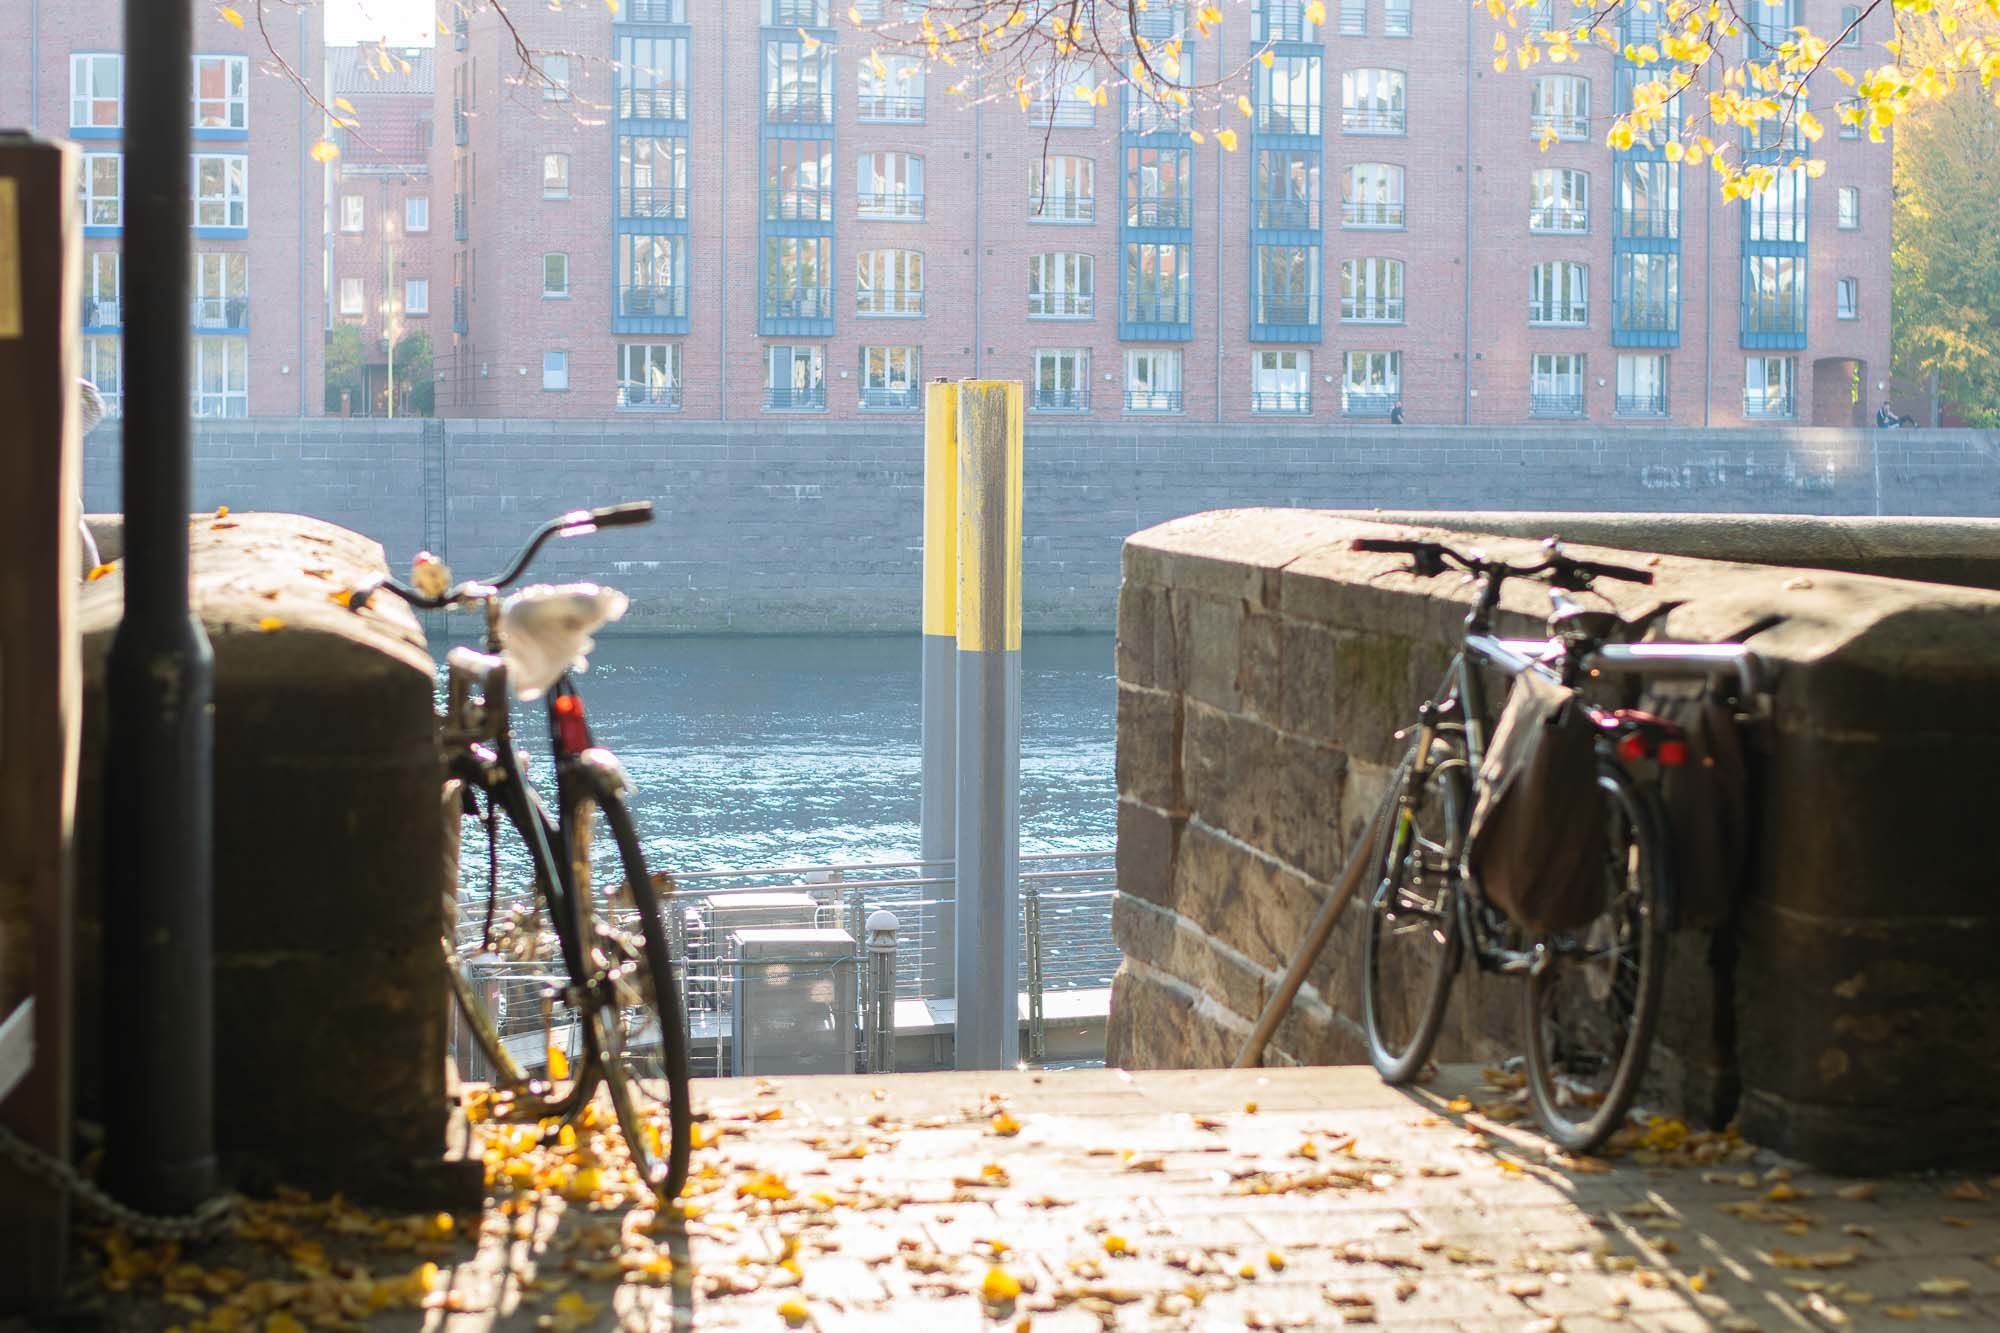 A view of bikes parked at the biergarten by the Weser River in Bremen, Germany.